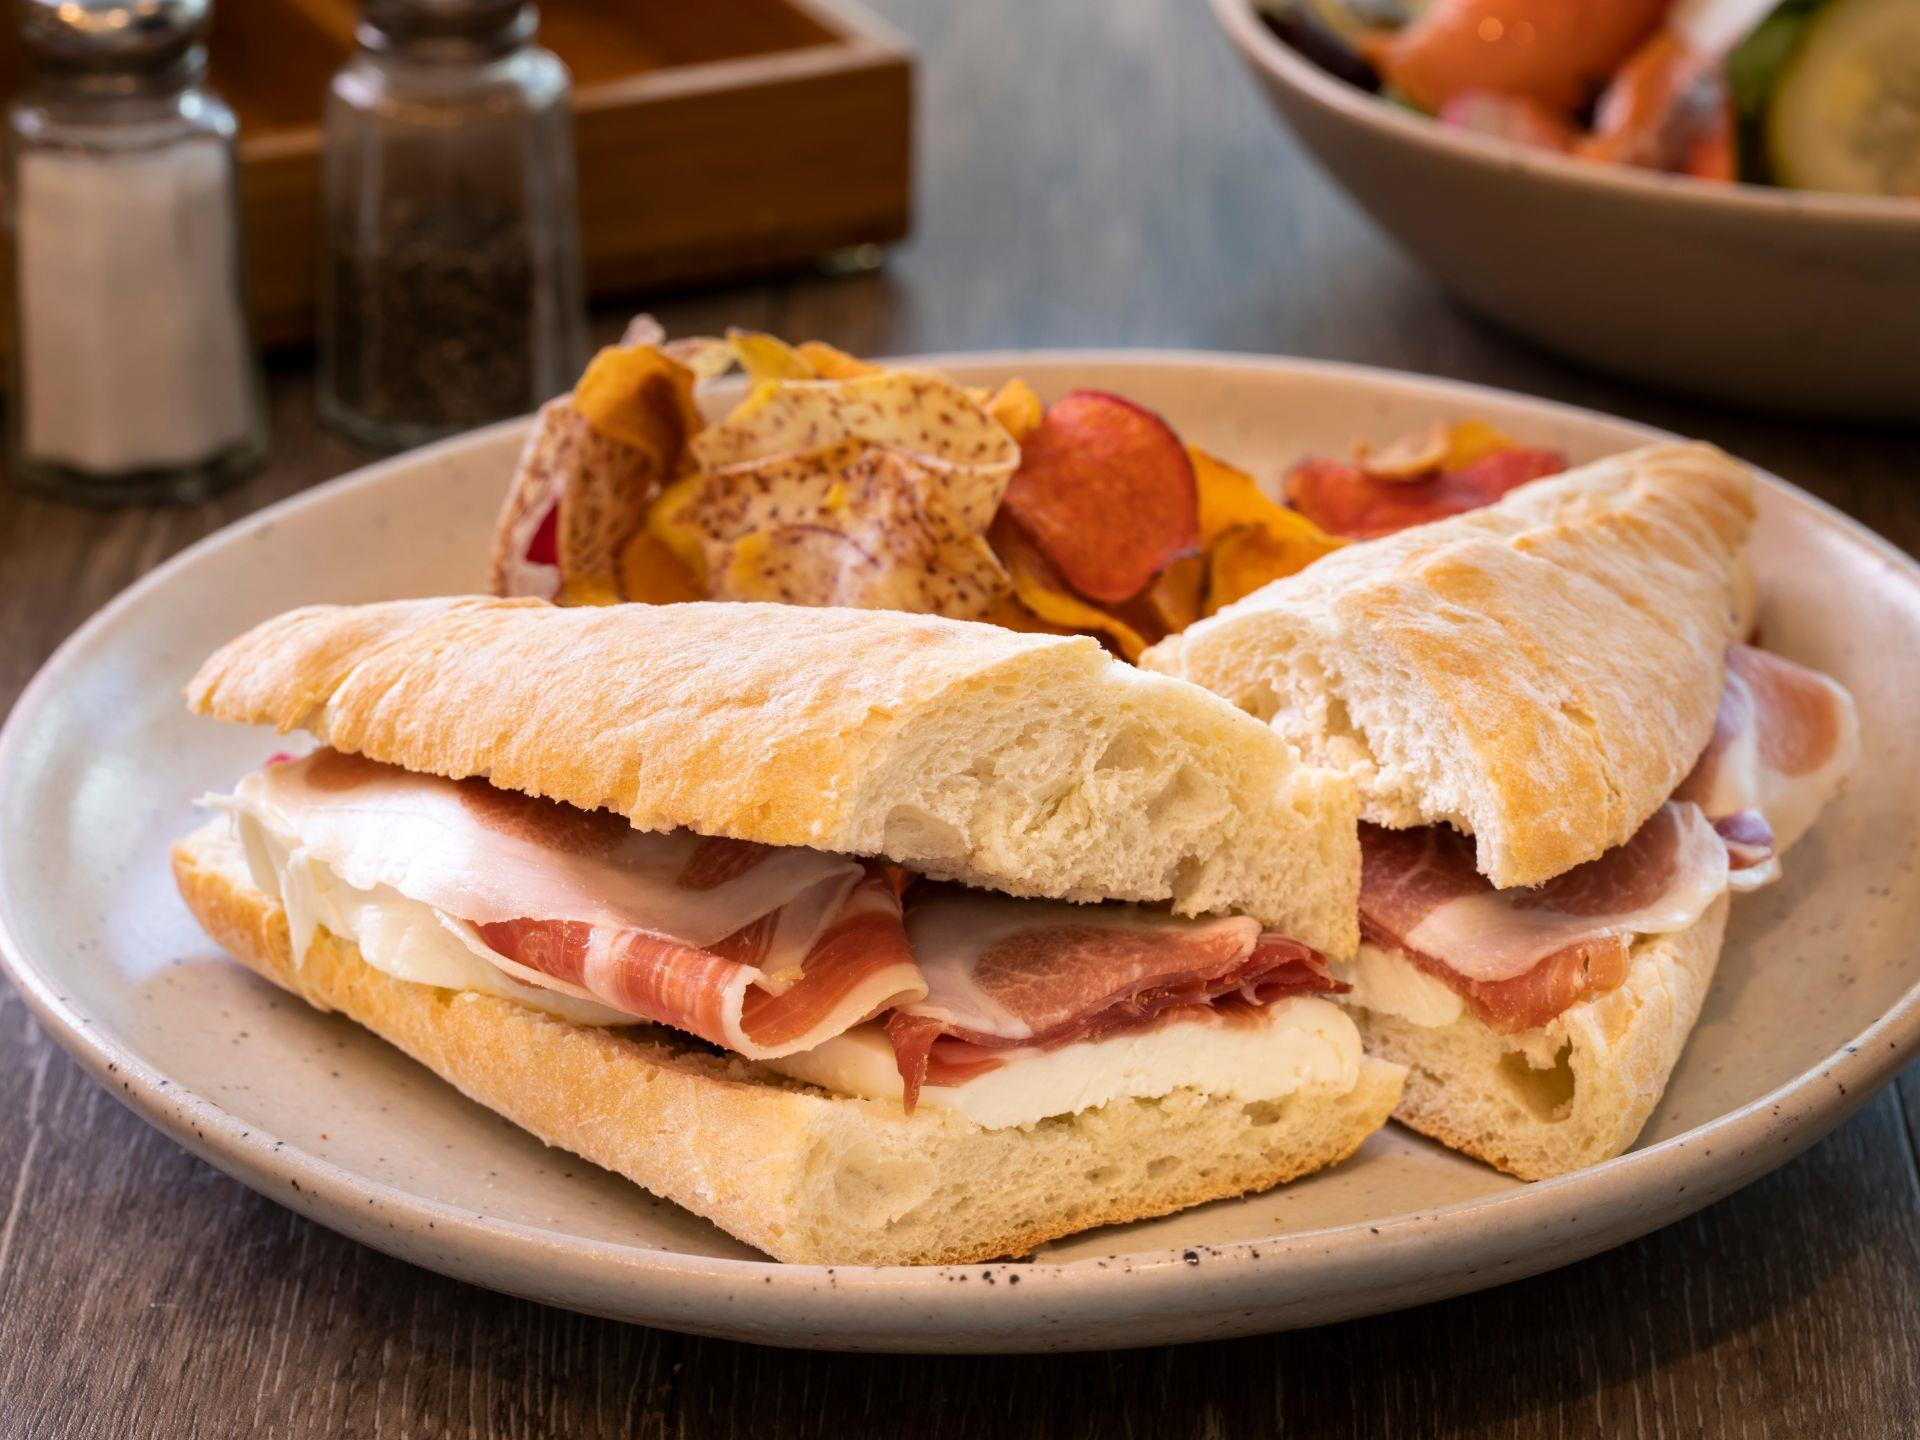 Prosciutto sandwich with mozzarella on a baguette